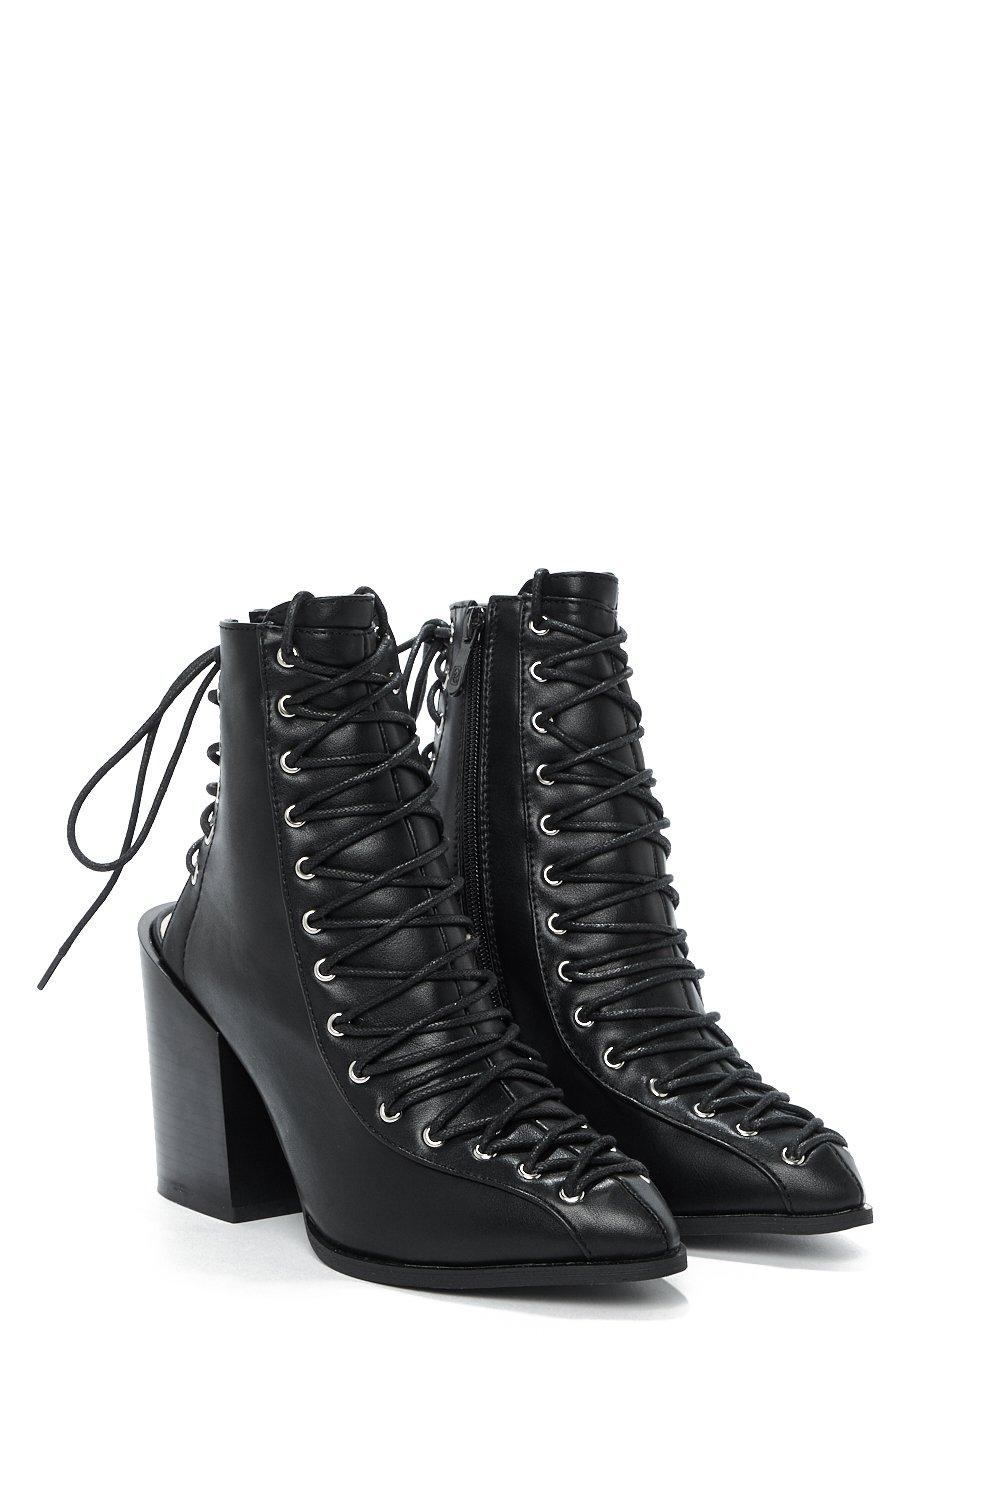 3887f47c75c Of Corset is Lace-Up Bootie | Shop Clothes at Nasty Gal!